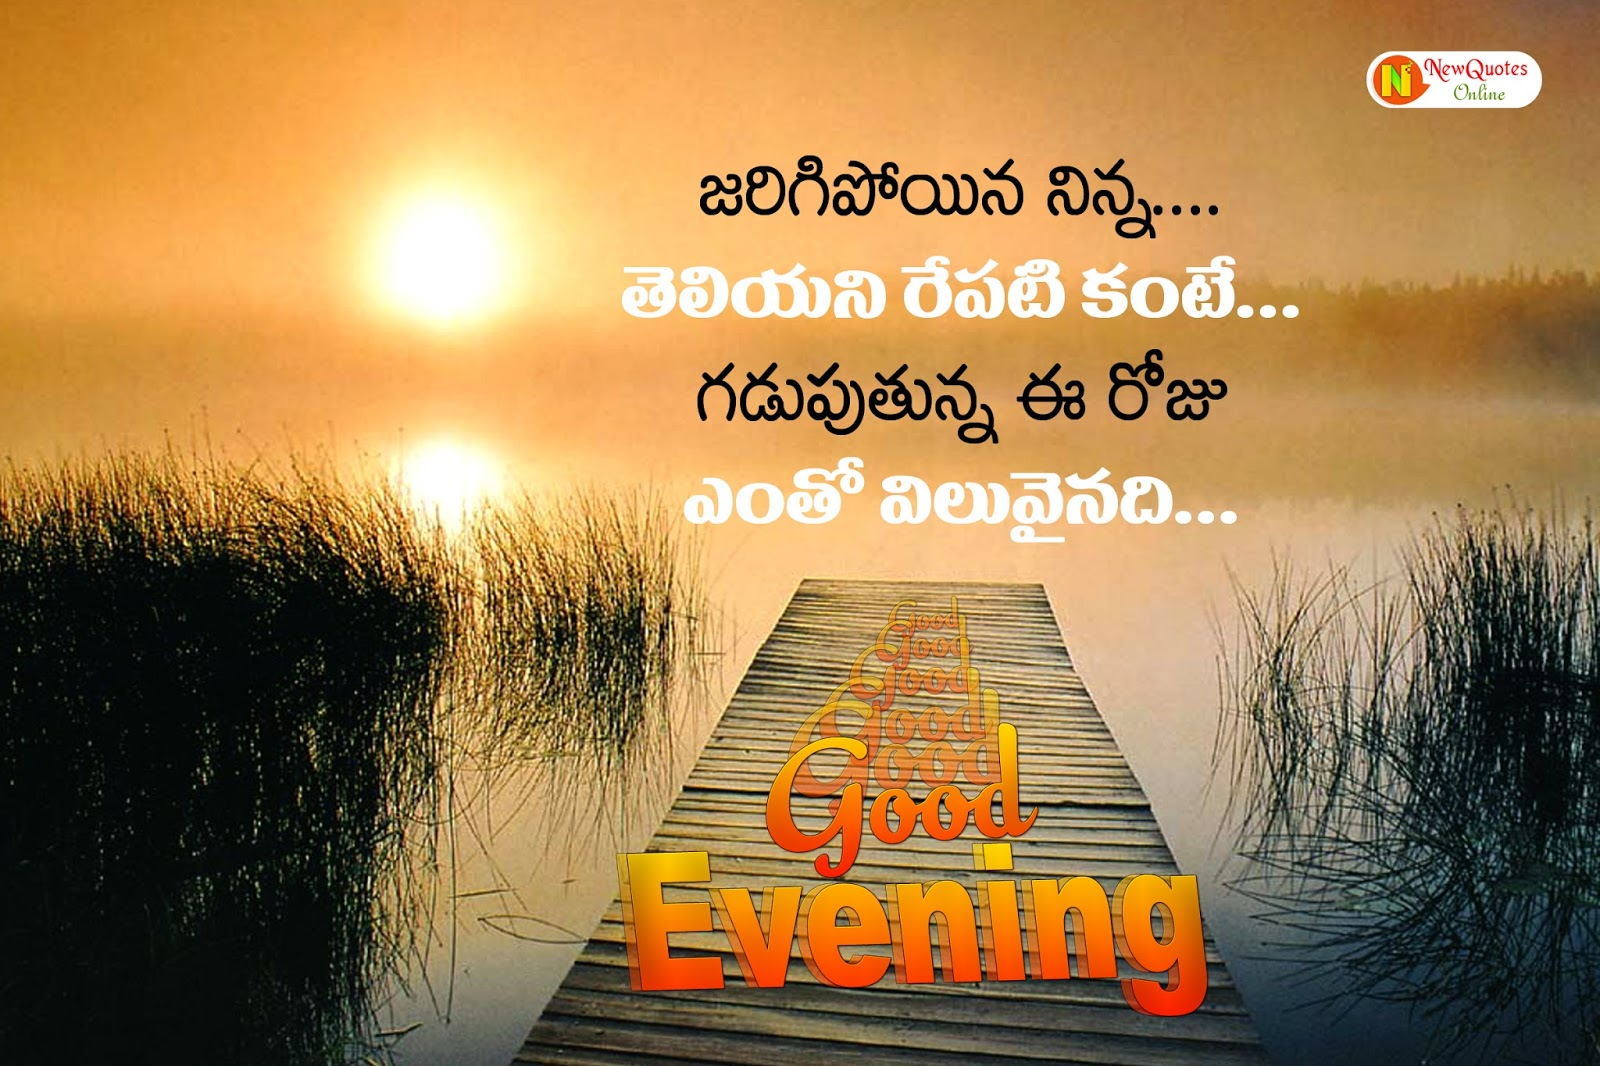 Good Evening Messages Quotes Sayings With Picture New Quotes